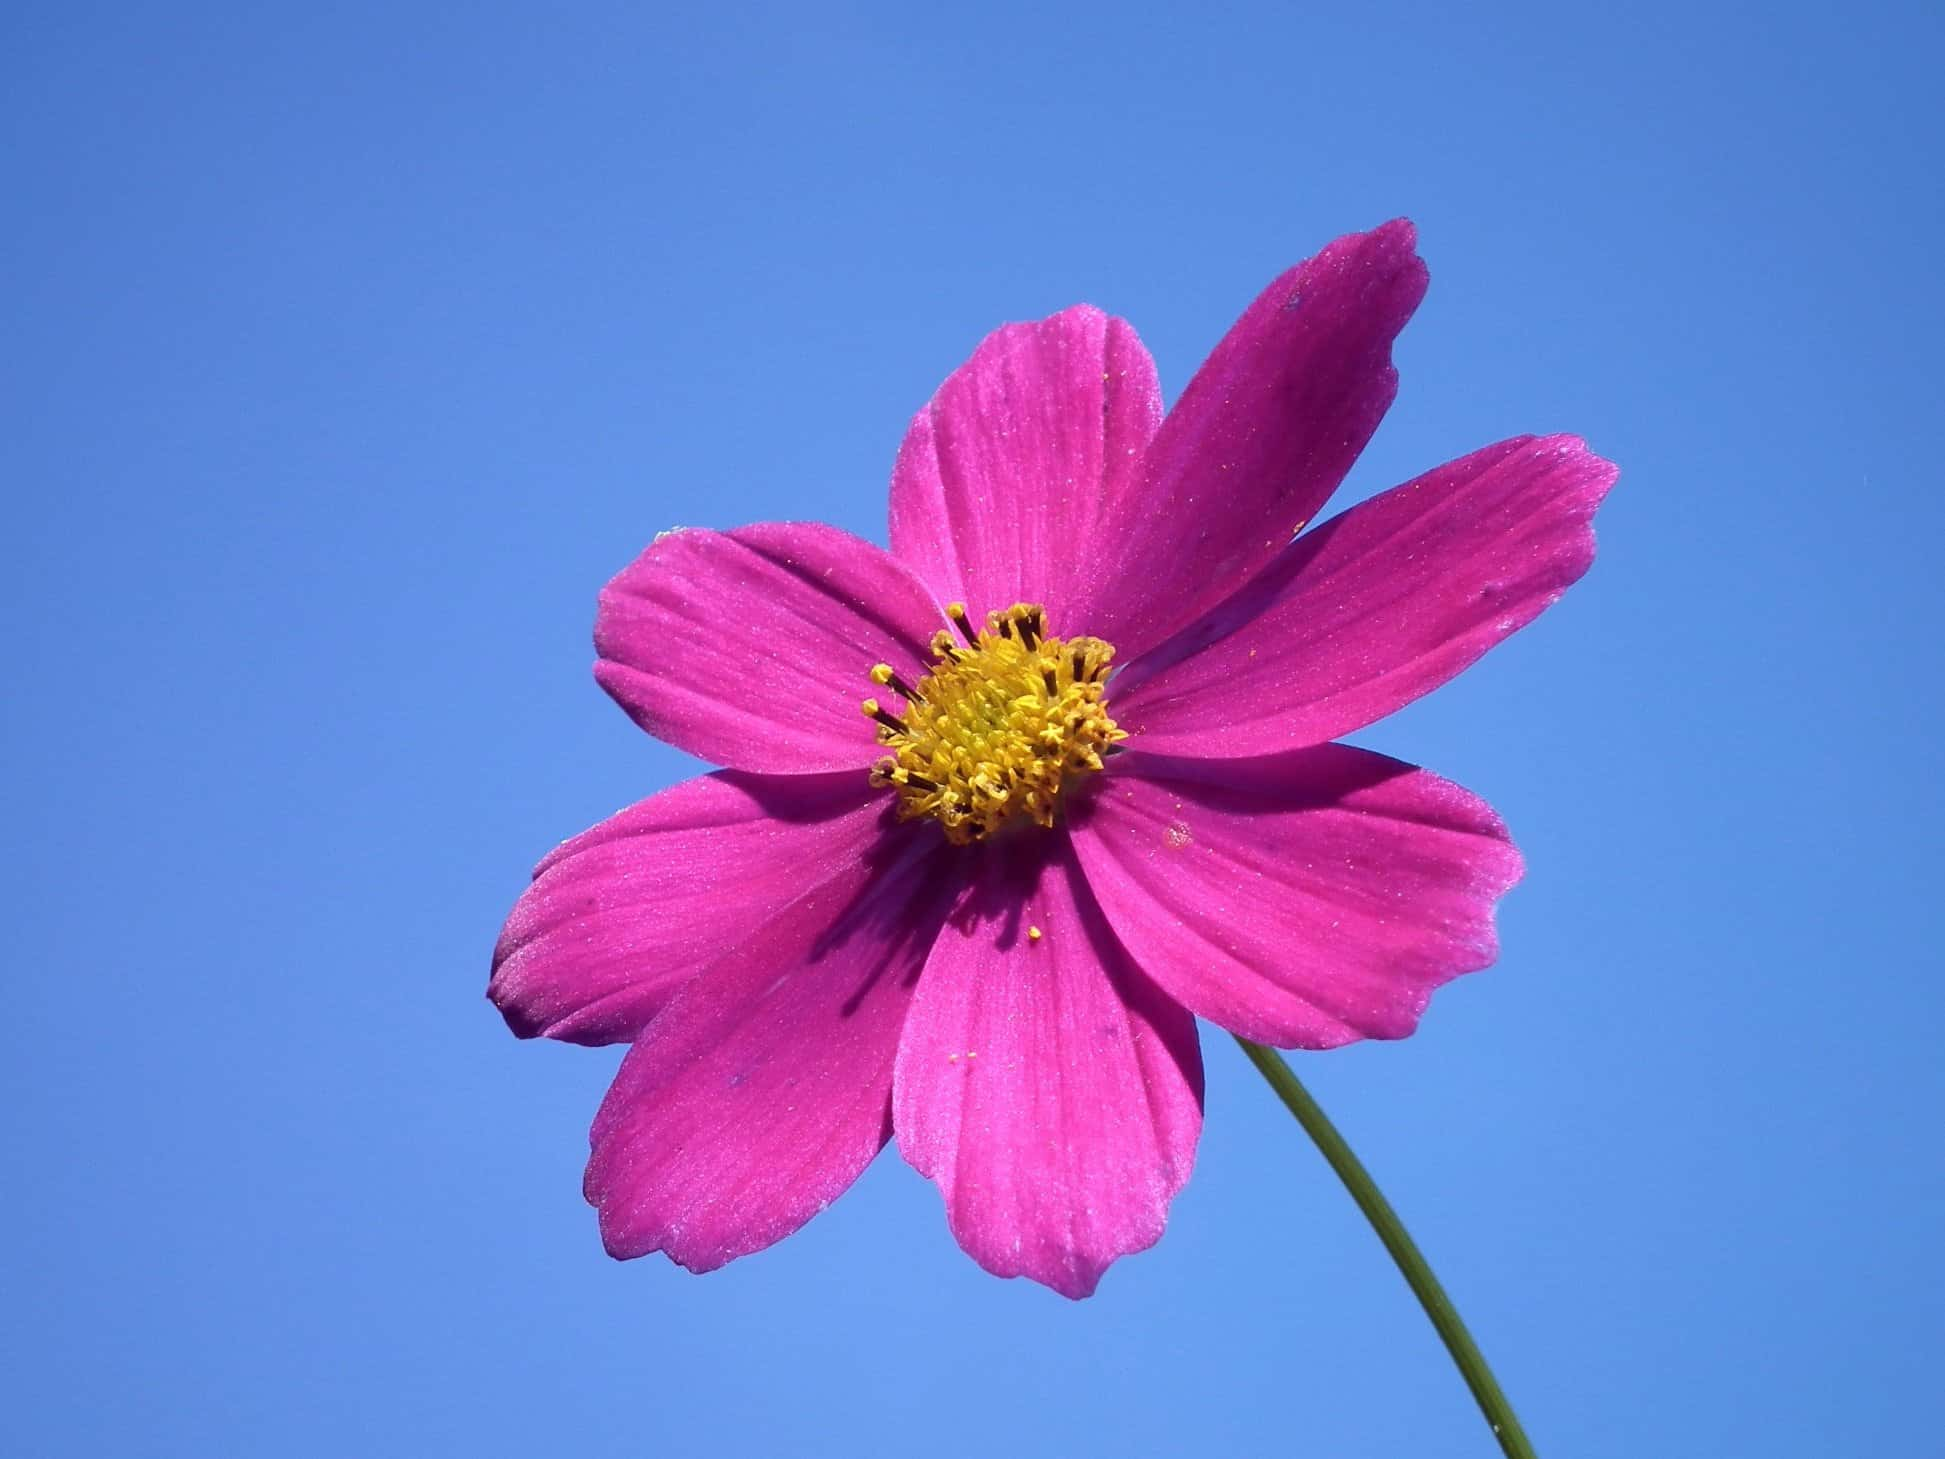 Free Beautiful Desktop Wallpapers For The Fall Free Picture Blue Sky Summer Flower Nature Petal